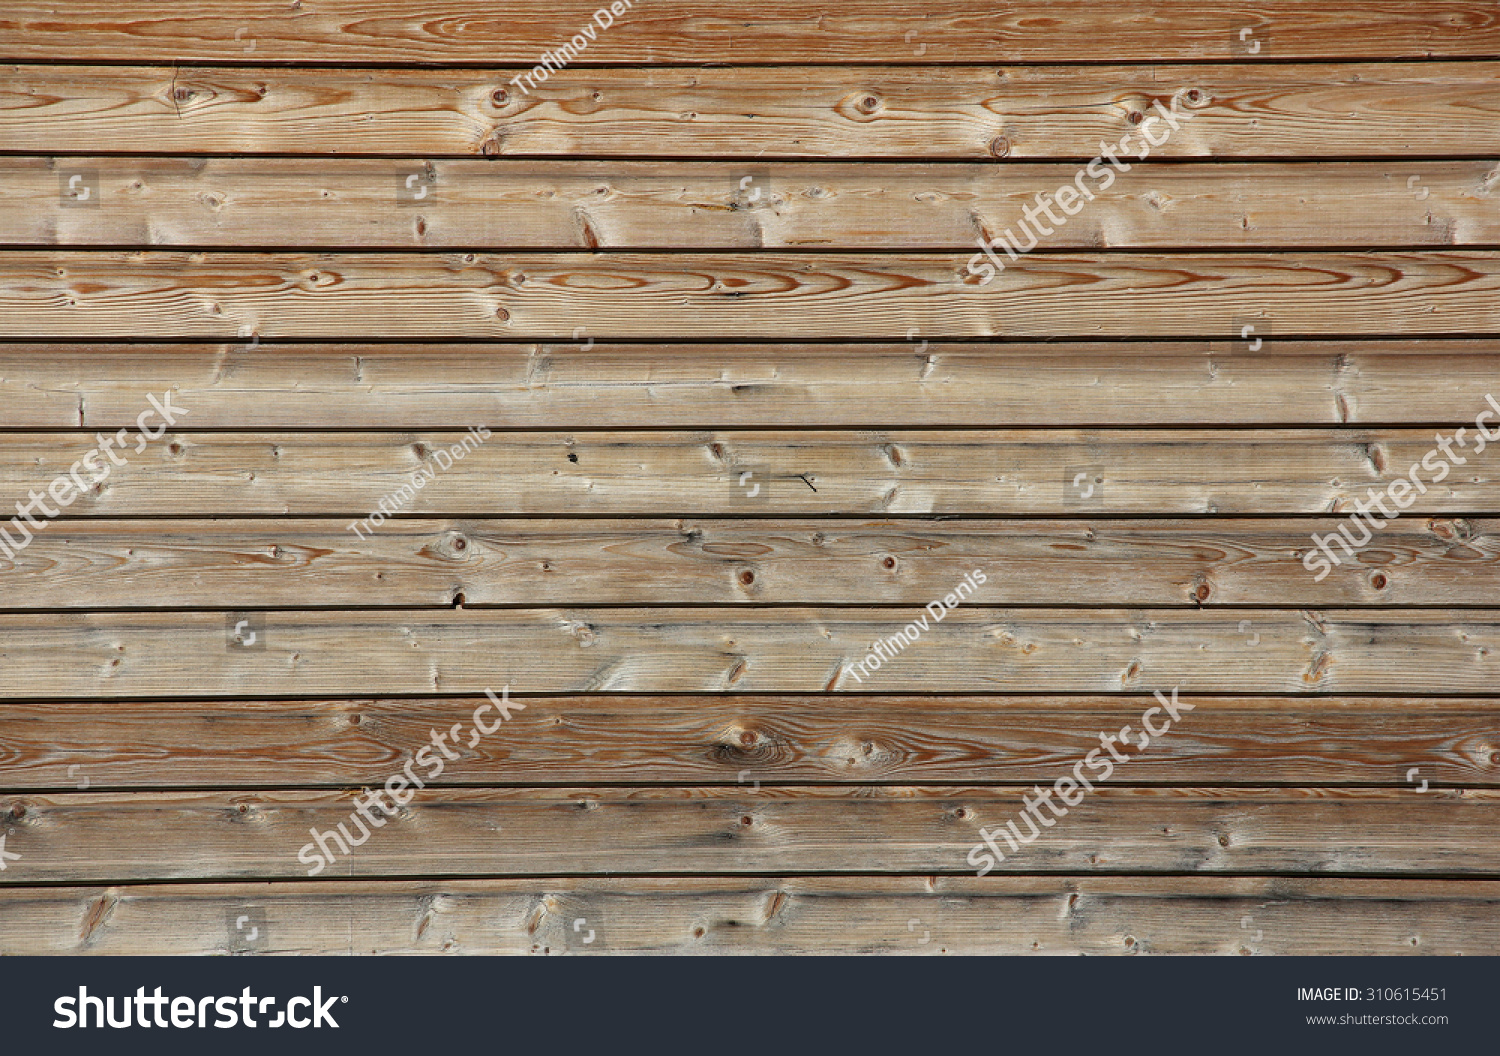 Many of horizontal wooden planks with no paint texture